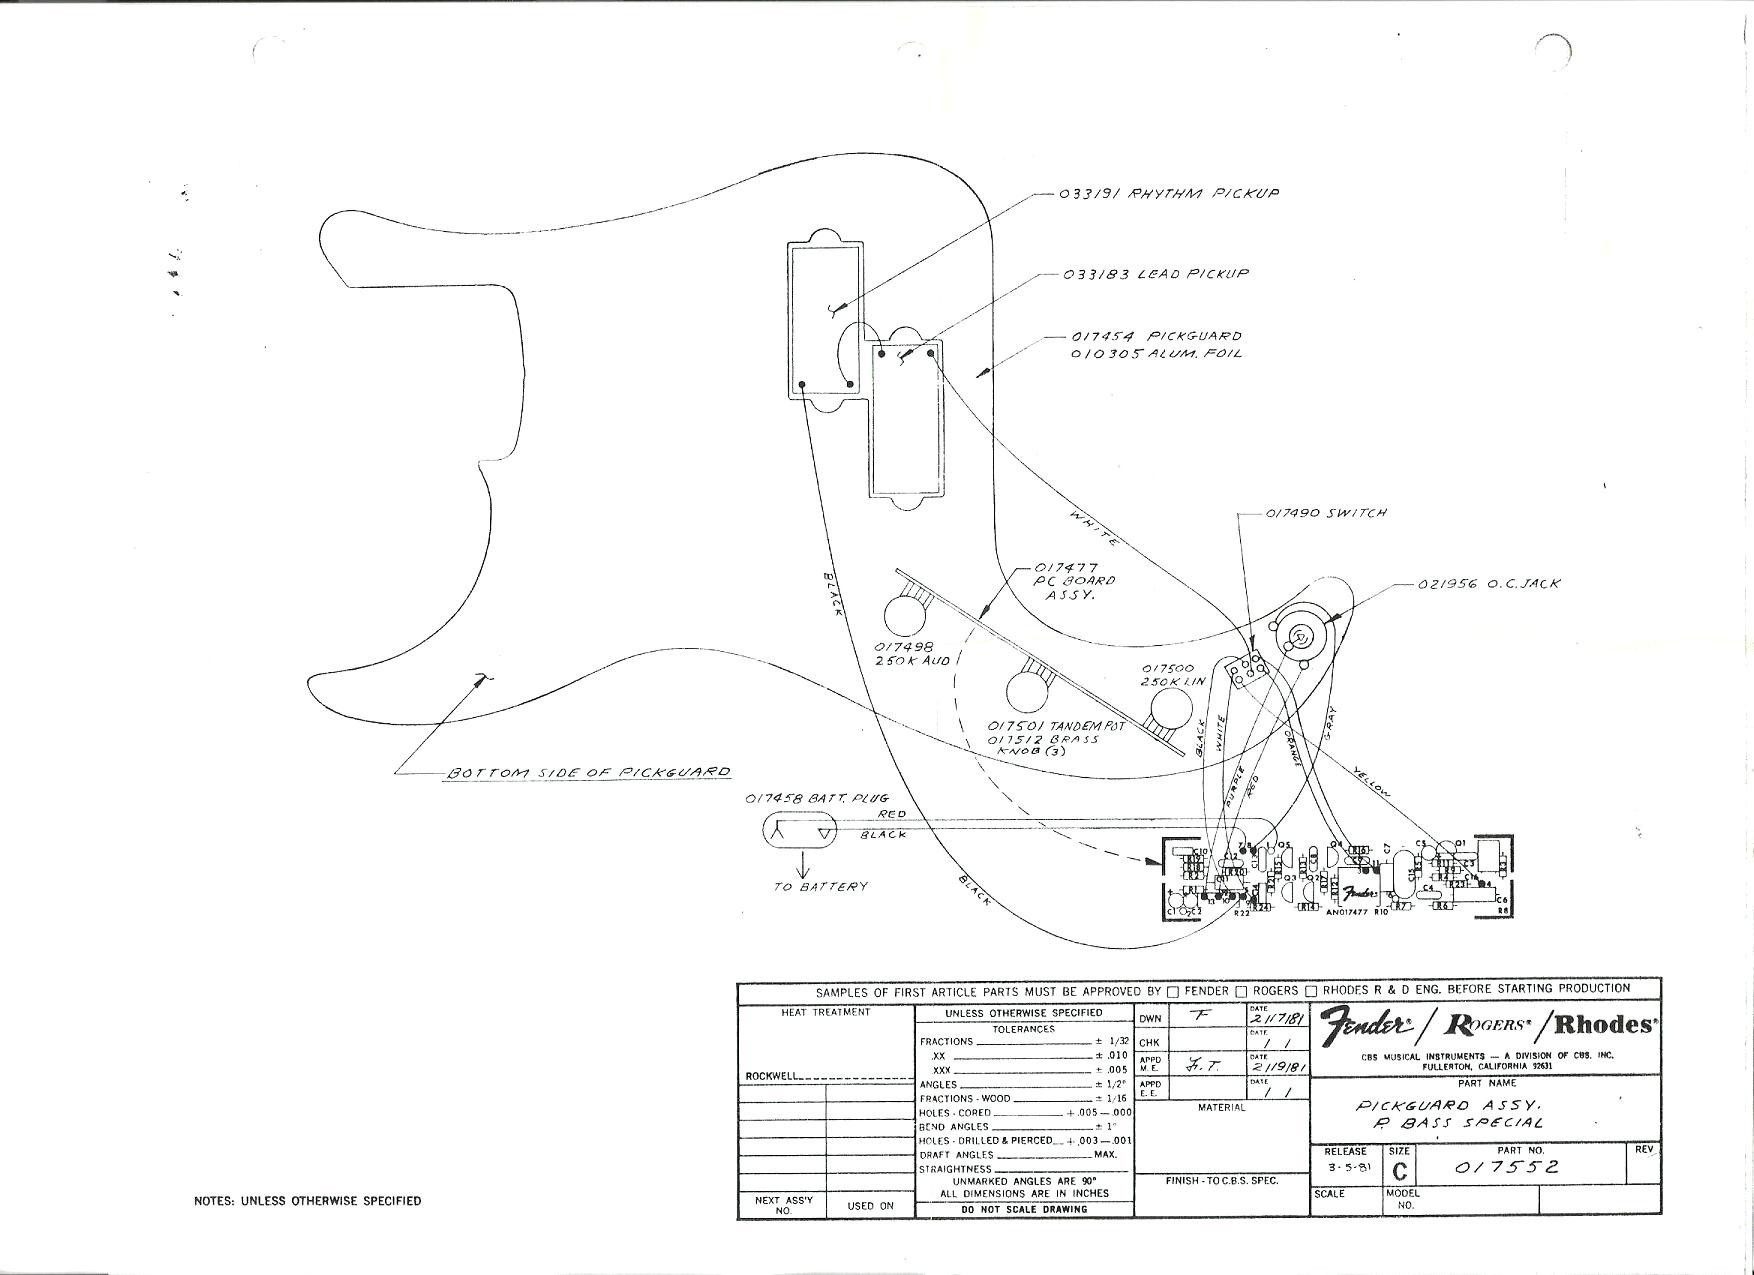 Fender Precision Bass Wiring Diagram Amazing Fender Precision Bass Wiring Diagram Everything Of Fender Precision Bass Wiring Diagram